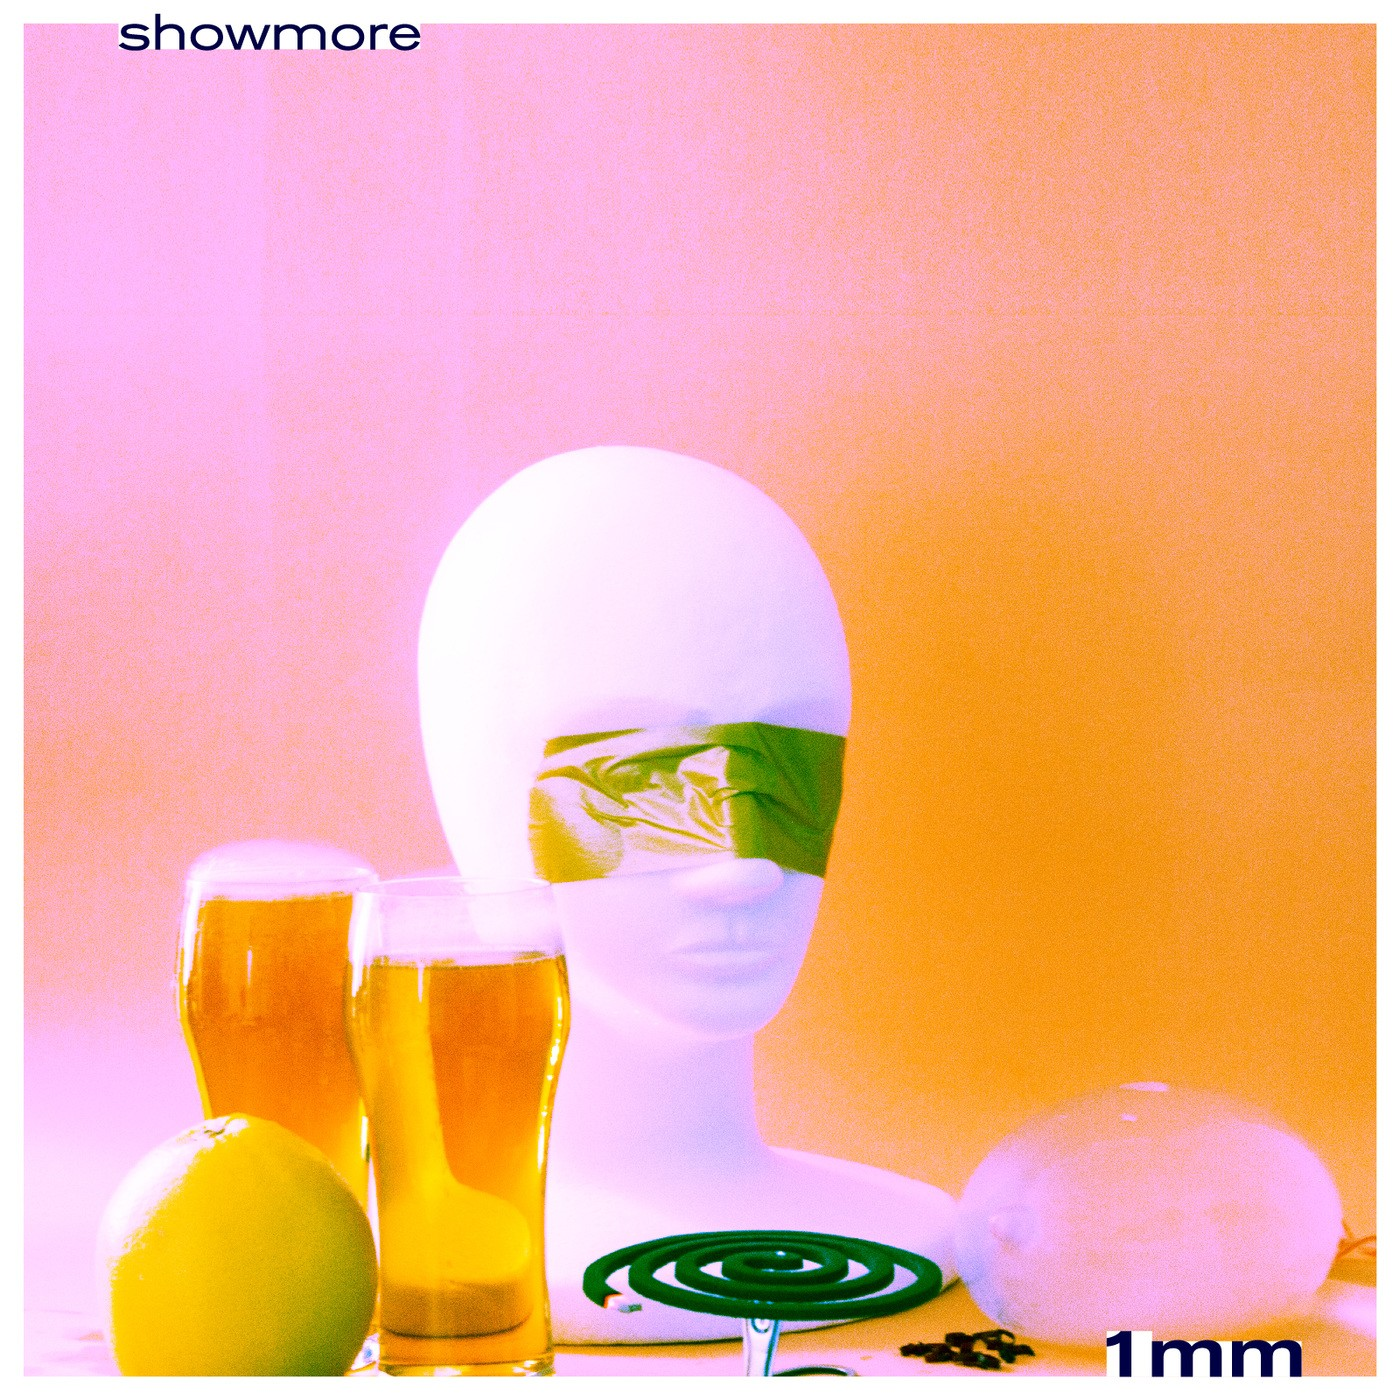 showmore – 1mm [FLAC / WEB] [2018.08.08]